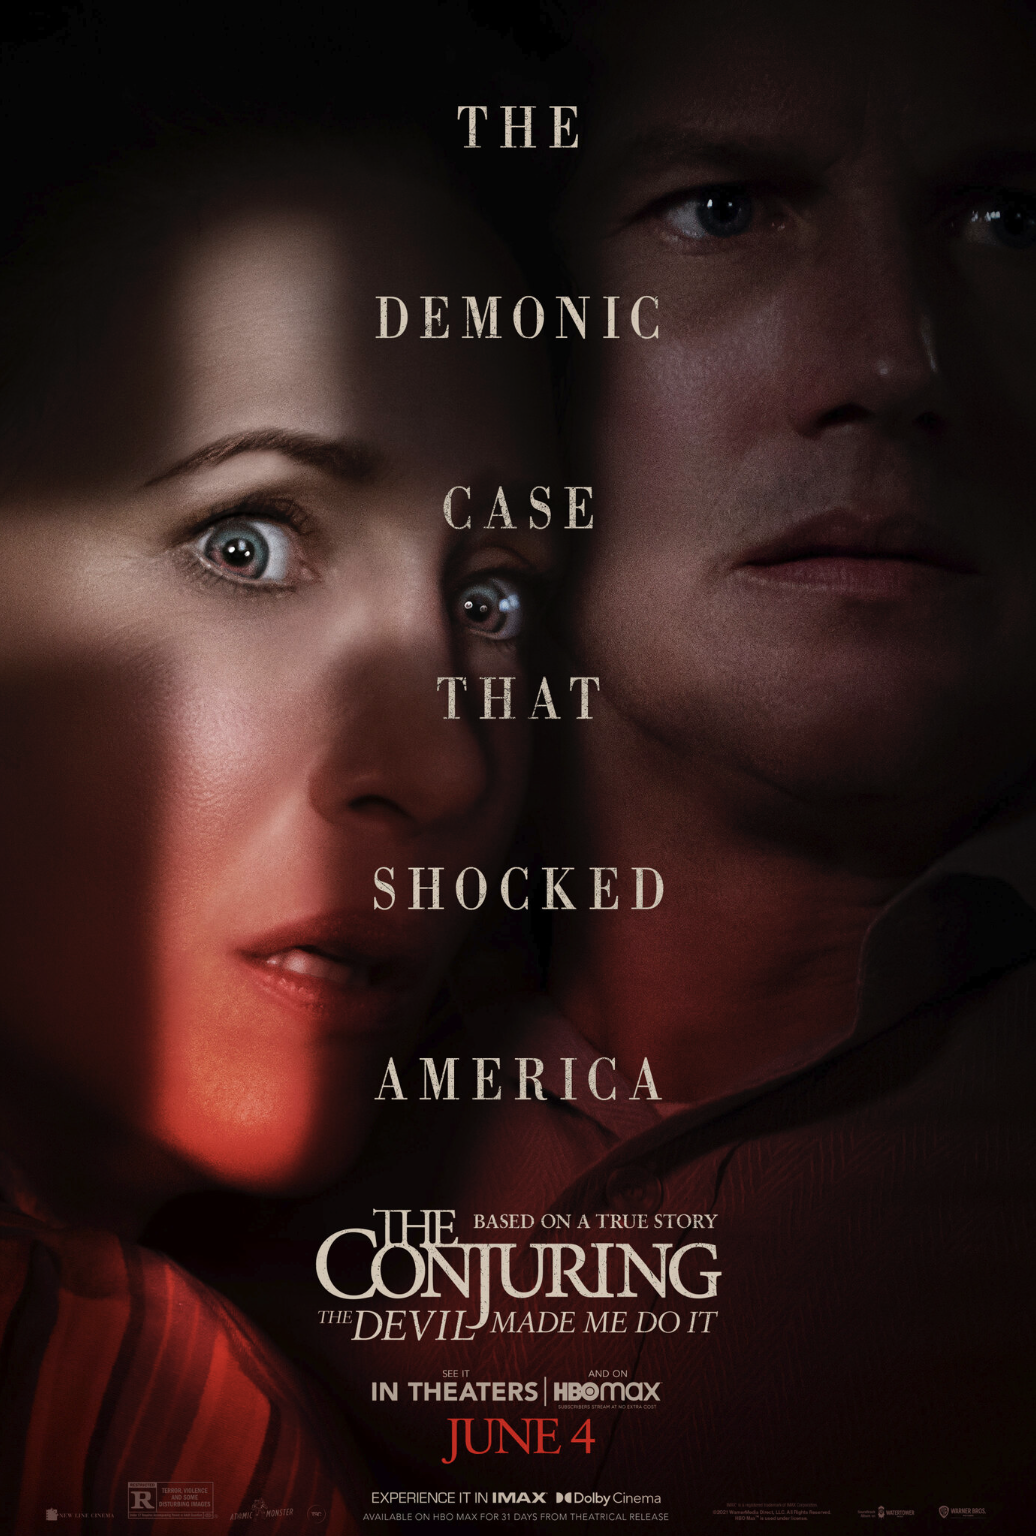 [News] Trailer Debut for THE CONJURING: THE DEVIL MADE ME DO IT